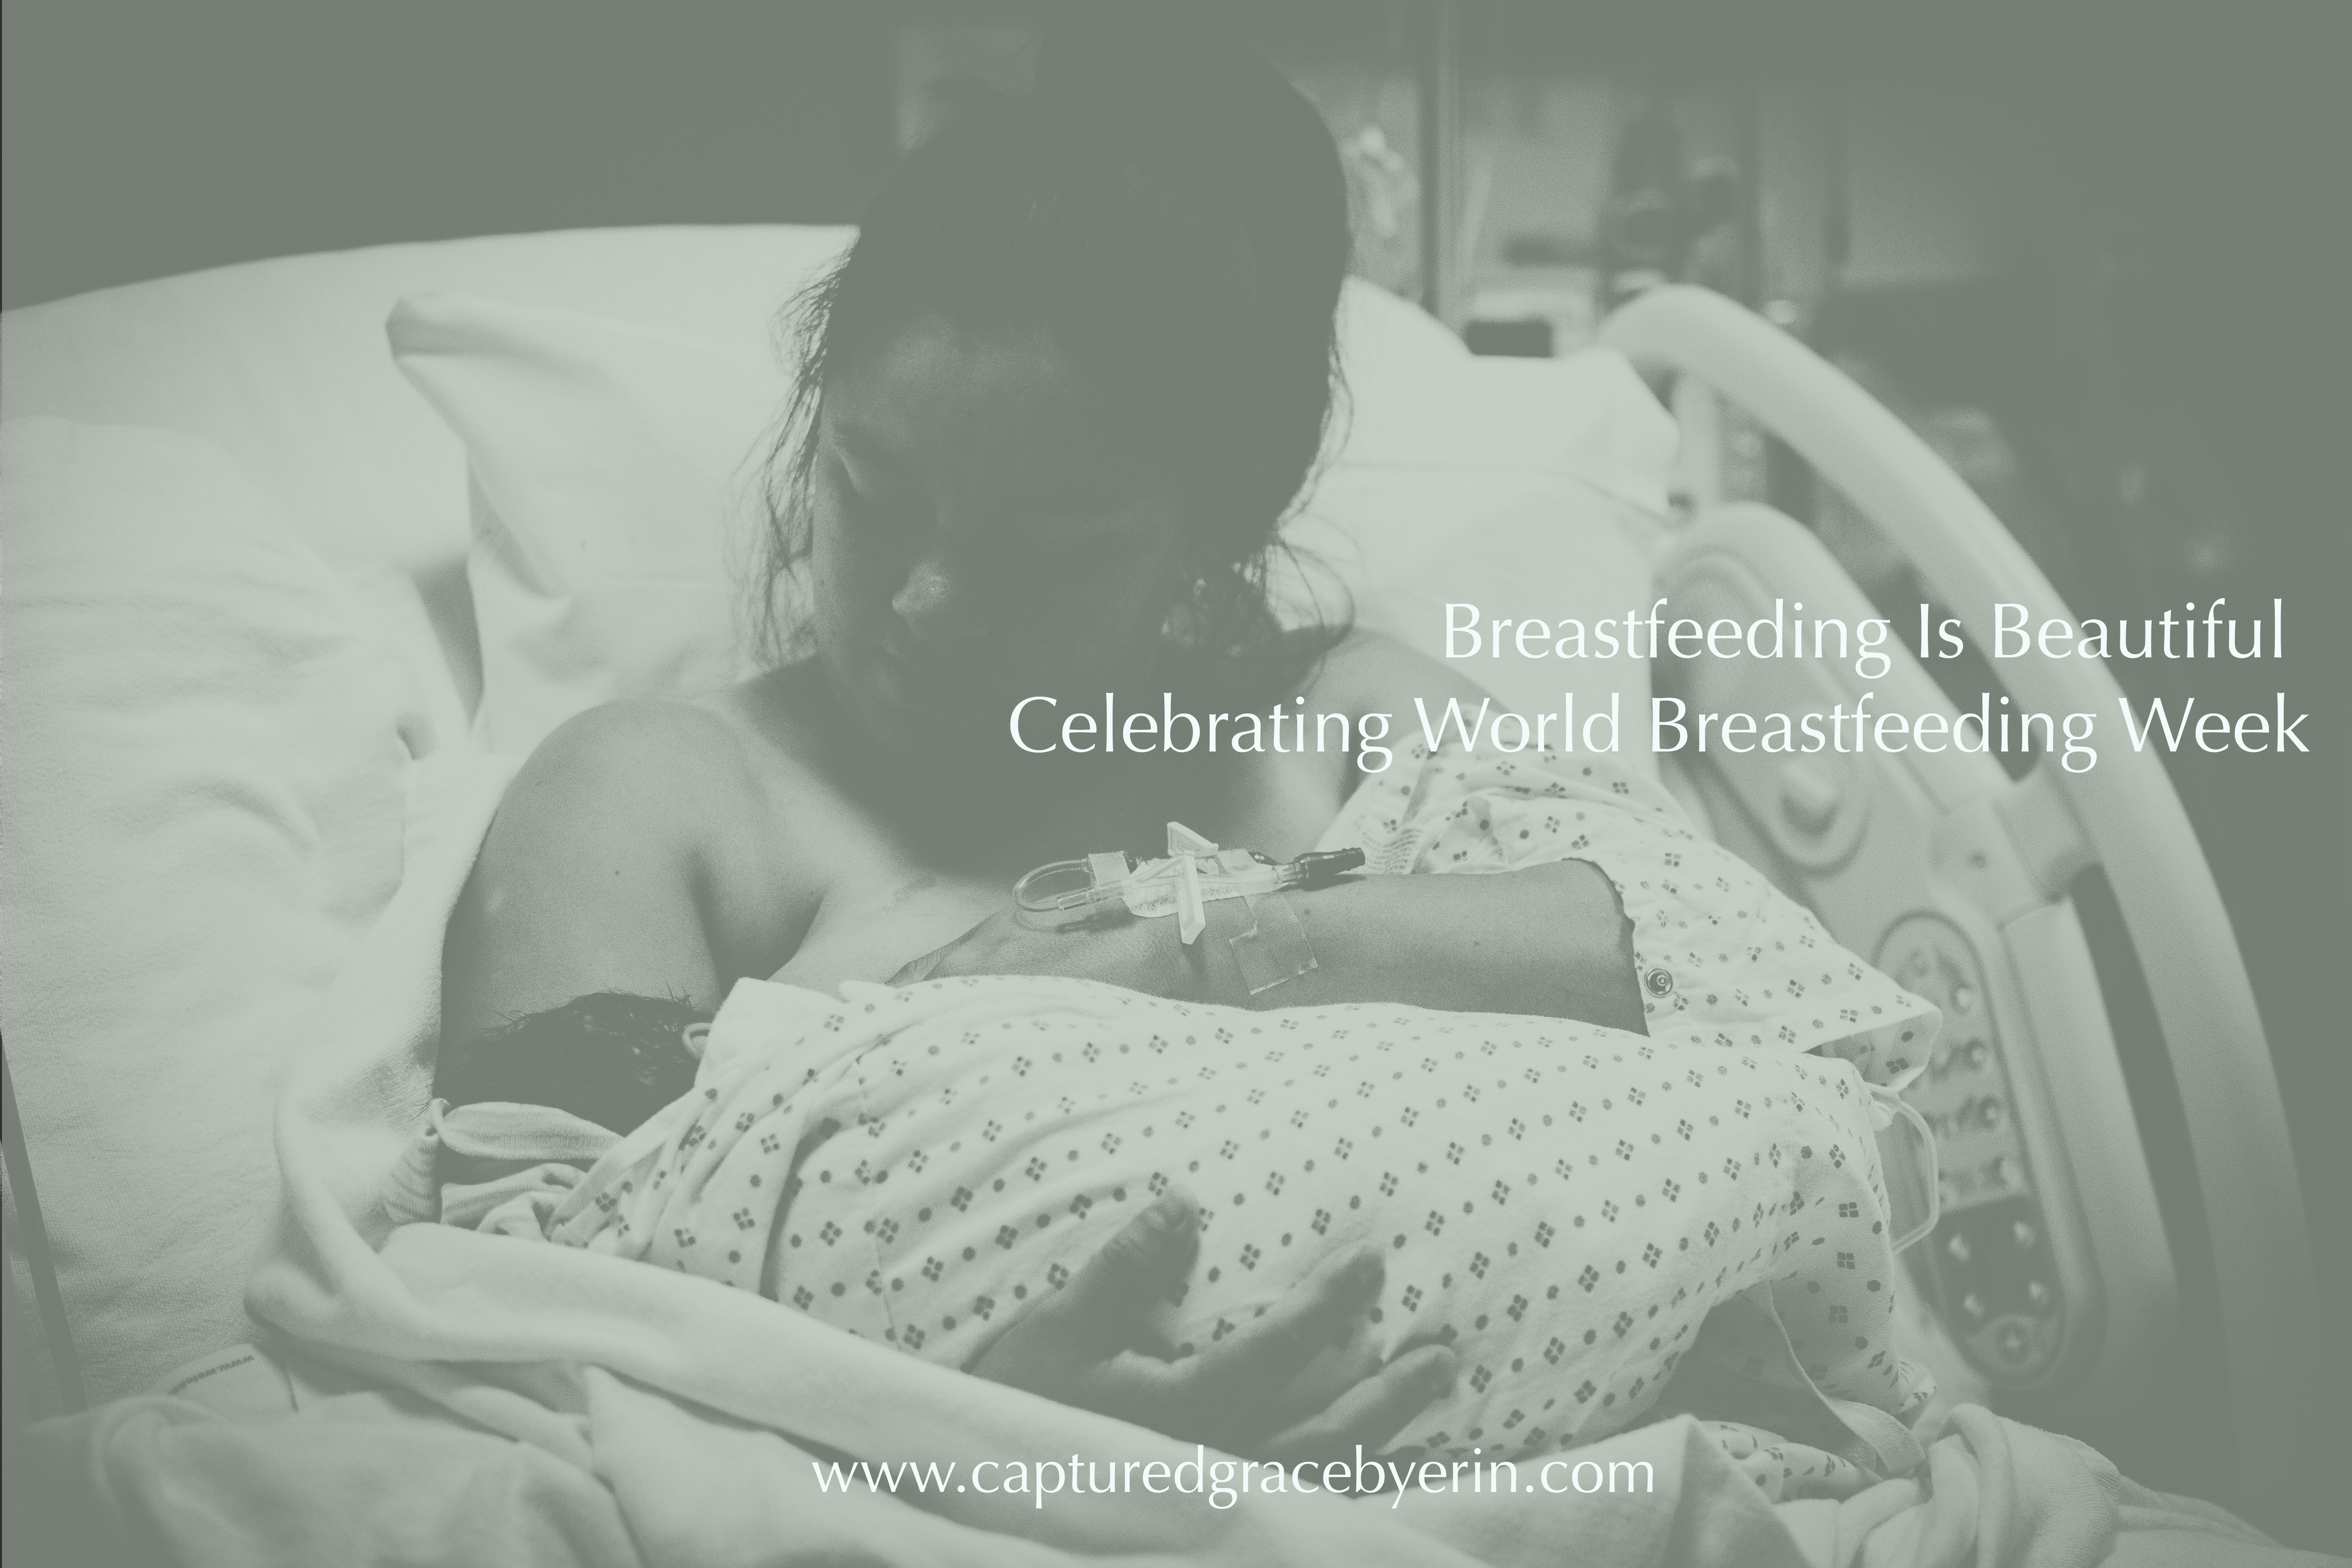 breastfeeding mom in hospital bed after birth redlands birth photography captured grace by erin